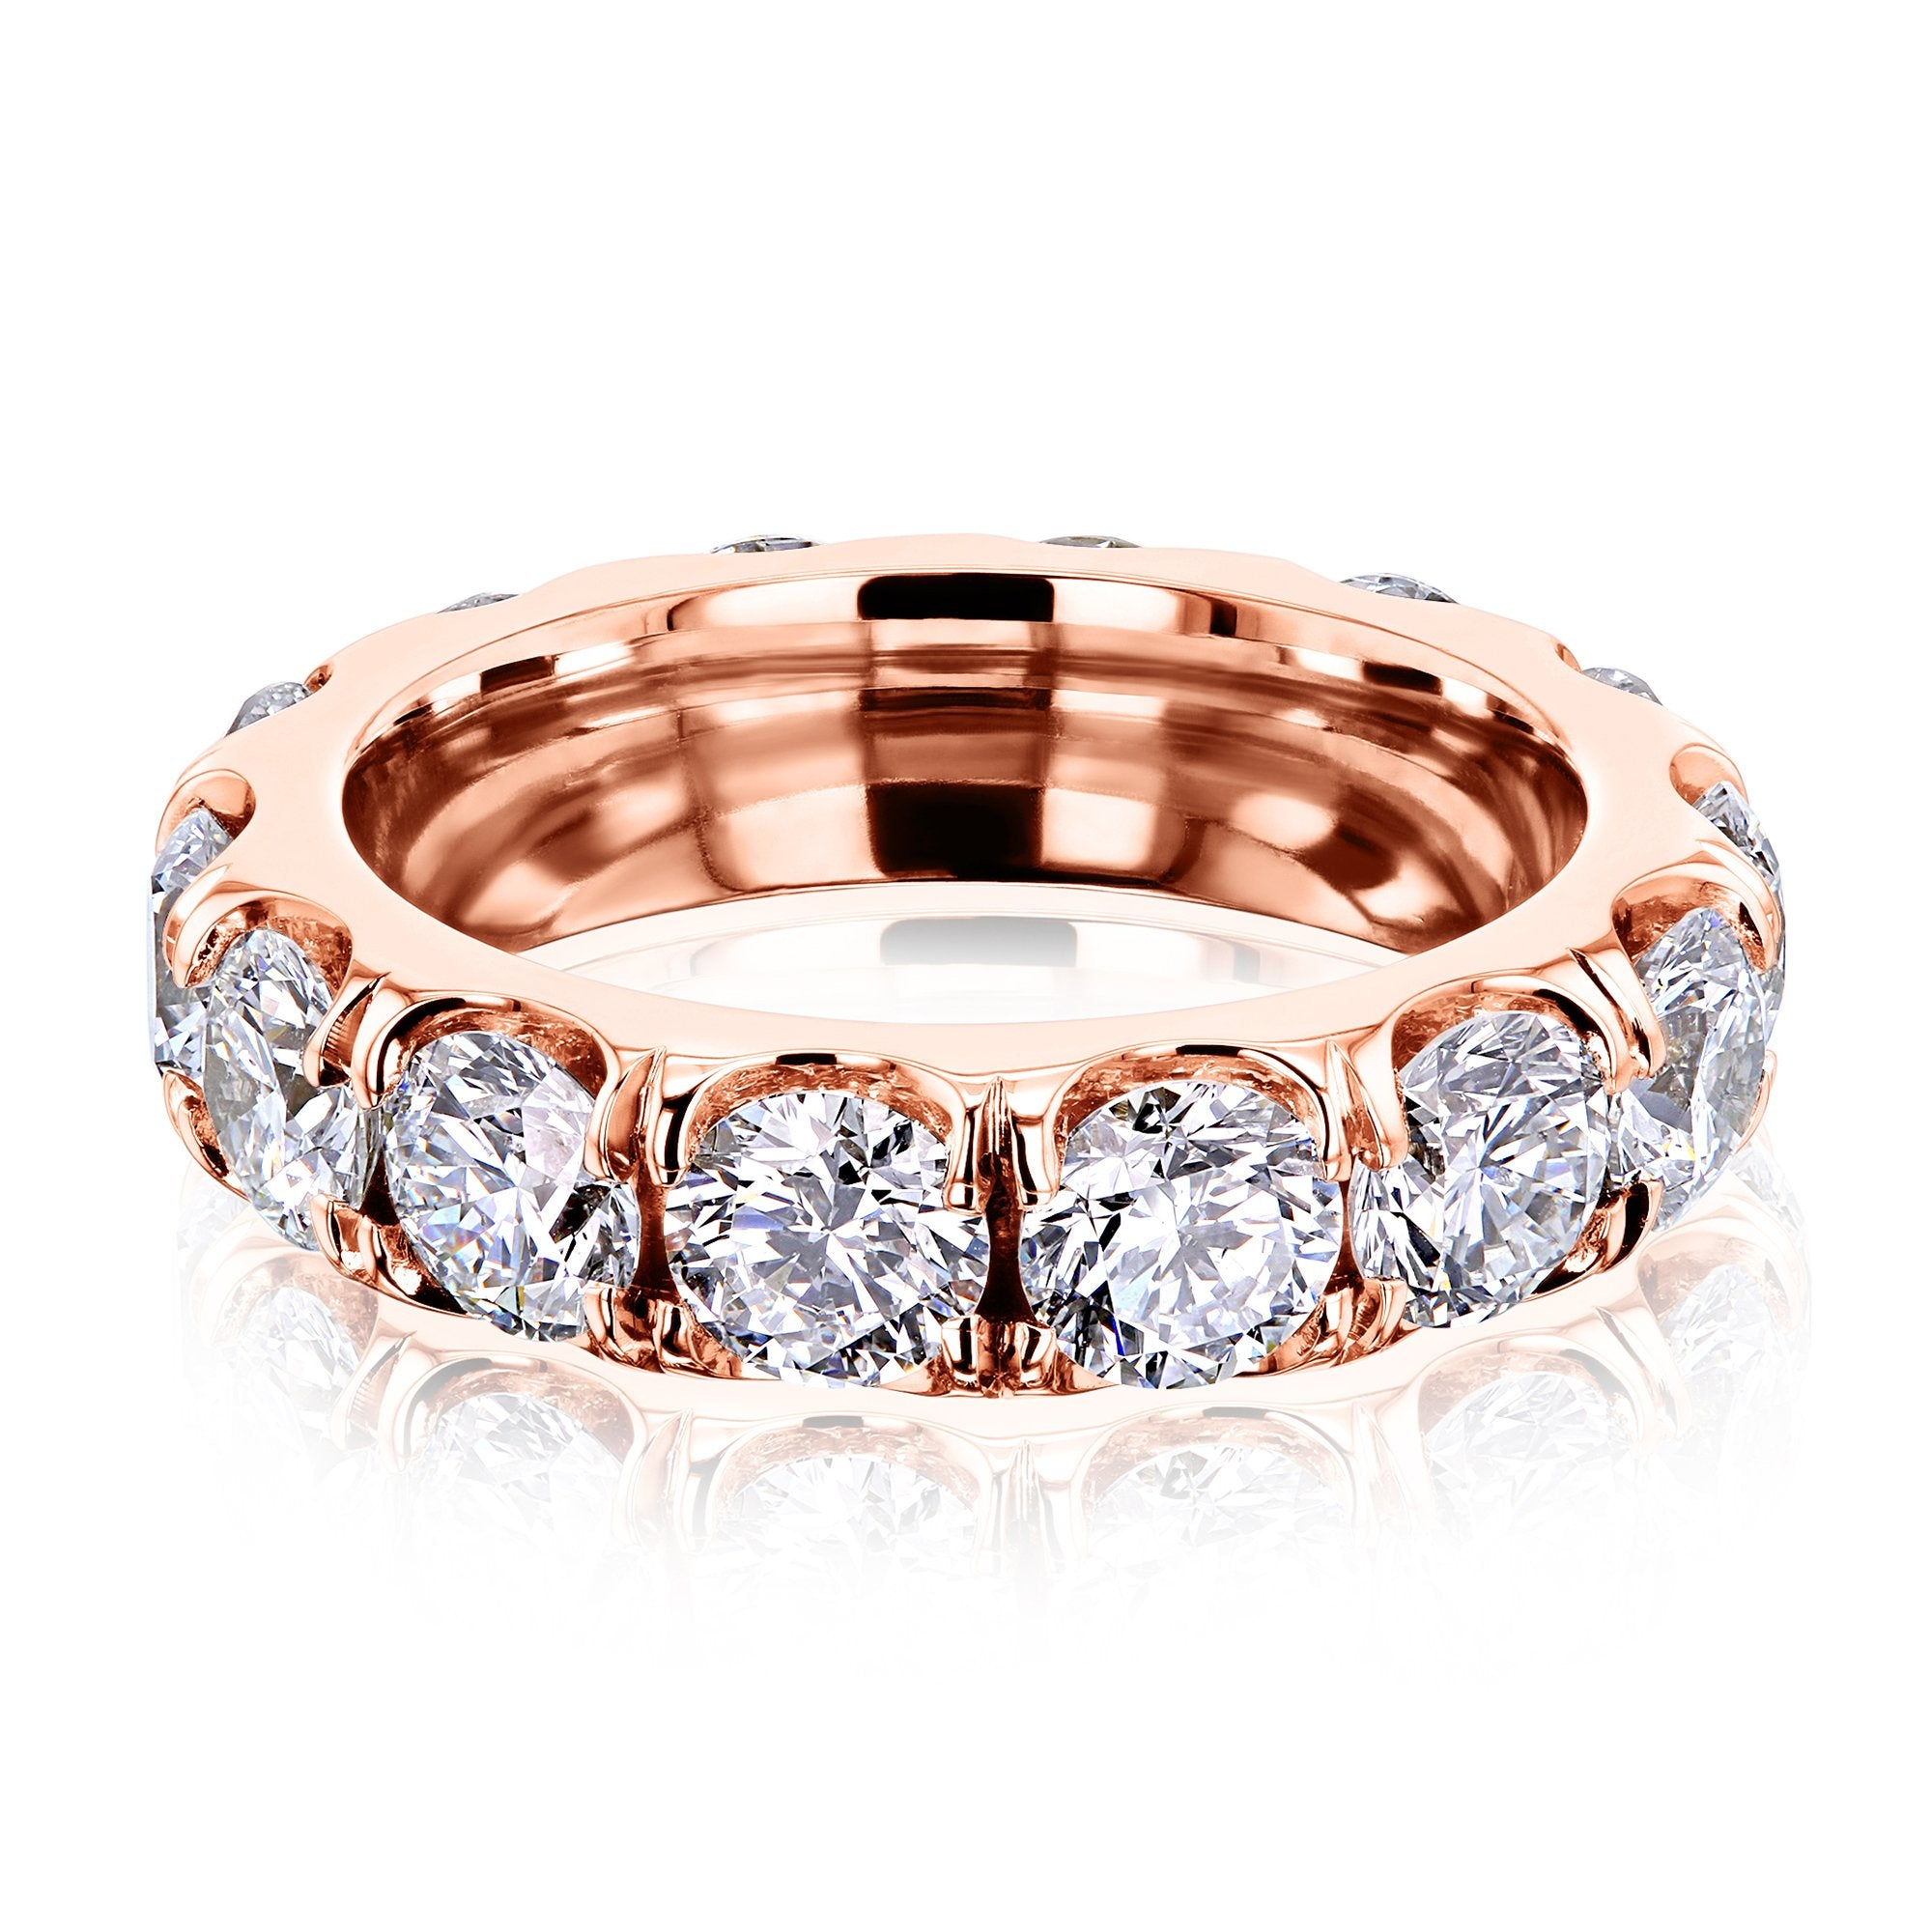 Top Wide Eternity Band - 5.5 rose-gold